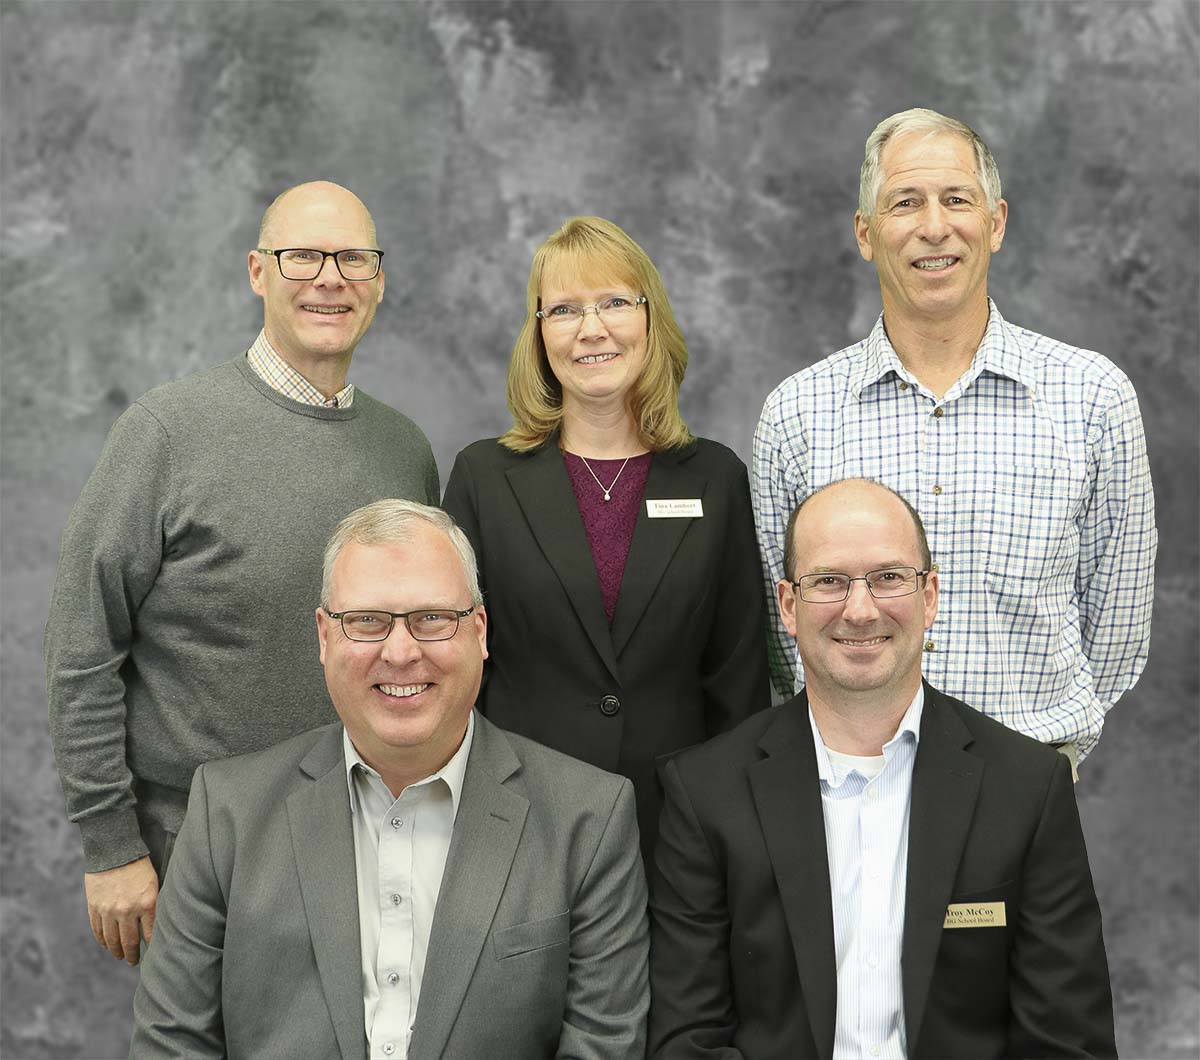 Members of the Battle Ground School Board are shown here. Pictured are (back row, left to right) Rob Henrikson, Tina Lambert, and Mark Watrin; (front row, left to right) Monty Anderson and Troy McCoy. Photo courtesy of Battle Ground Public Schools